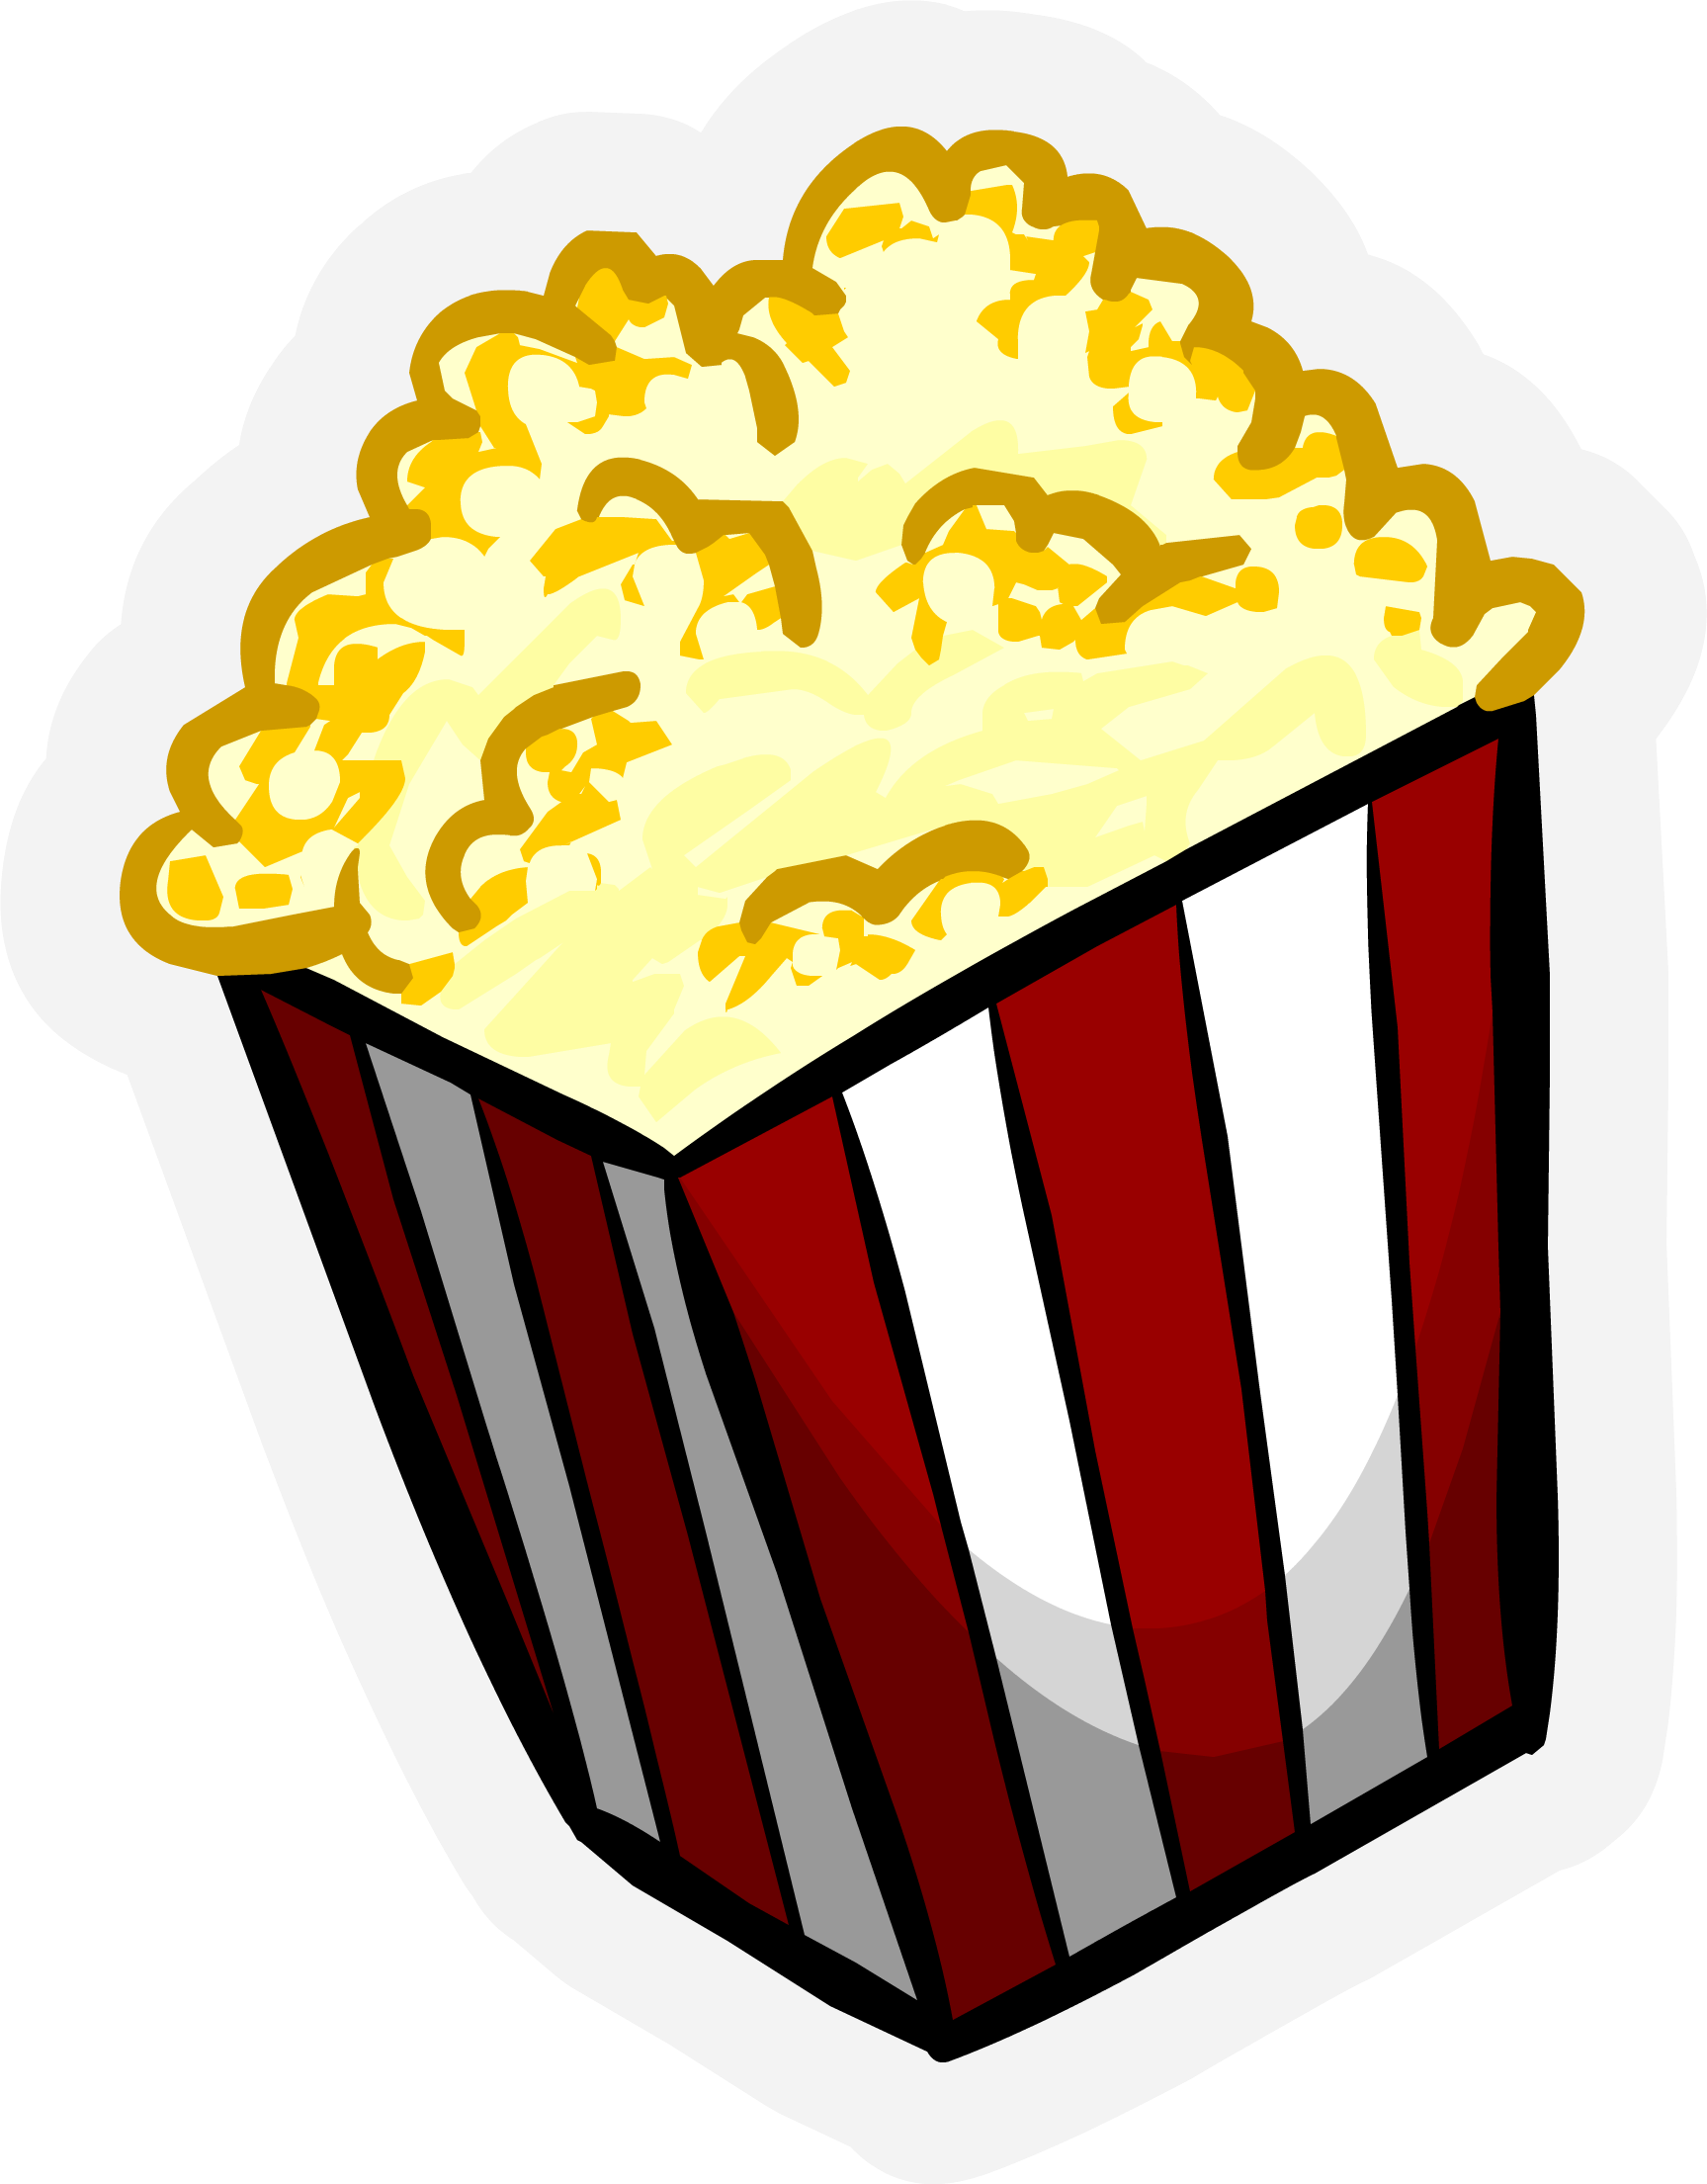 graphic royalty free Individual free on dumielauxepices. Popcorn clipart.